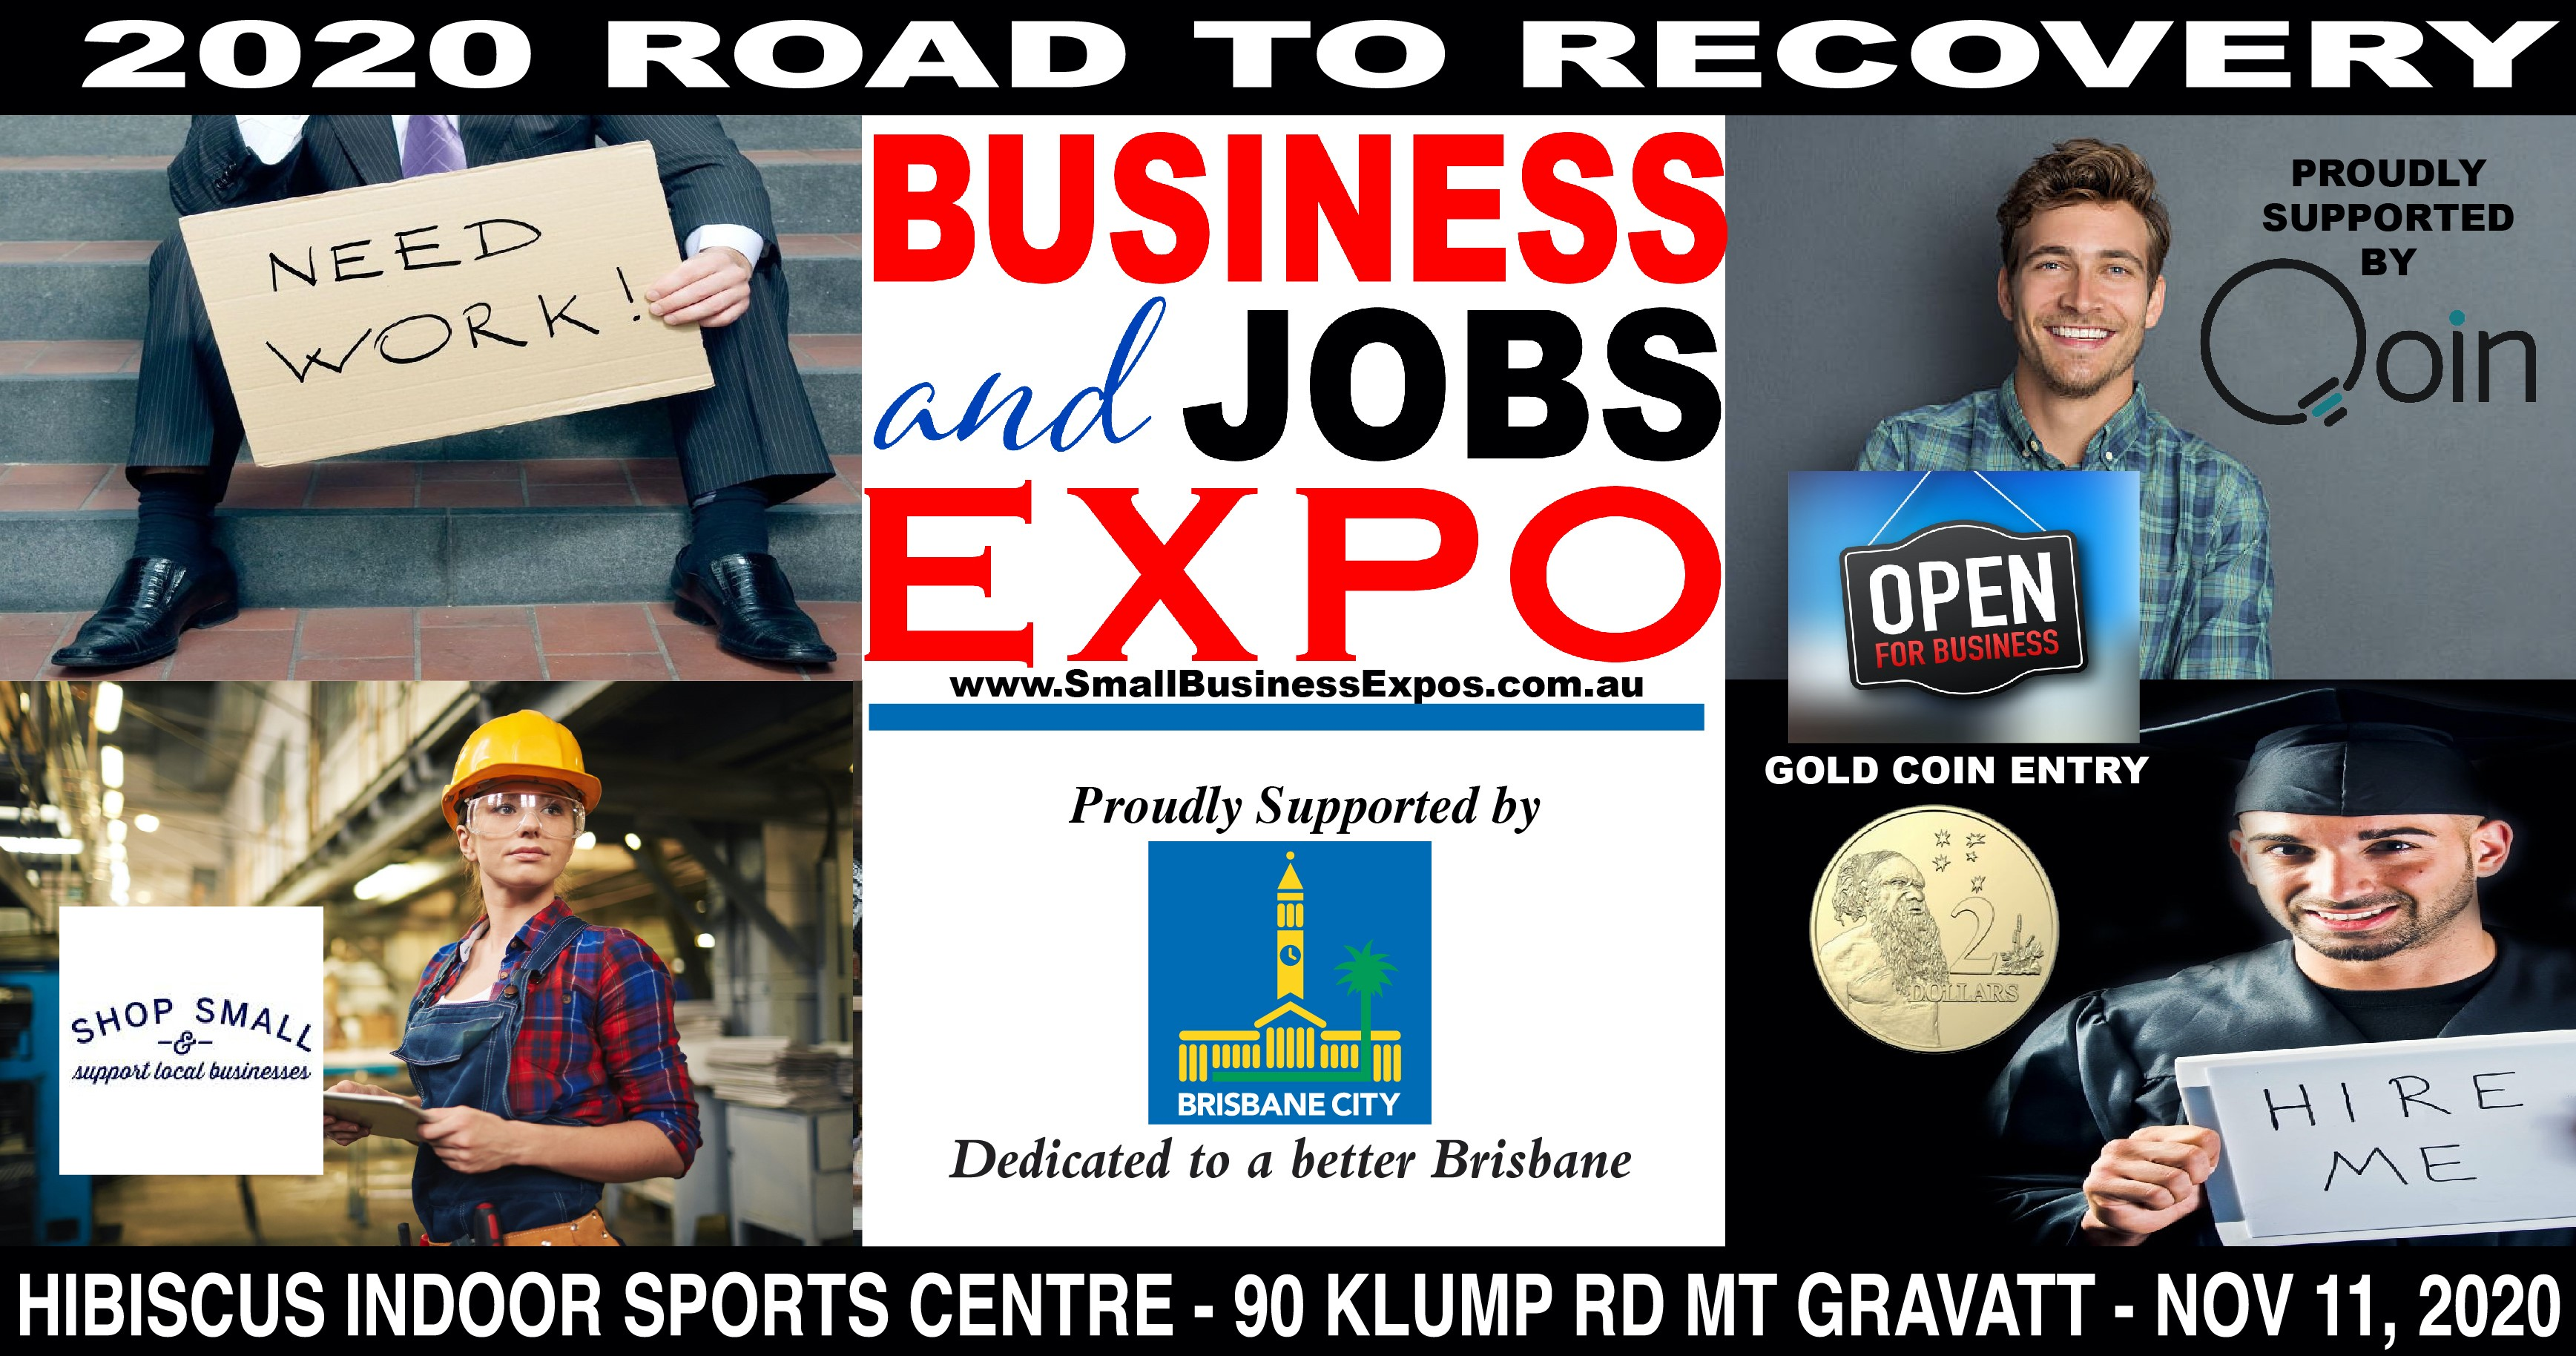 Business Expos | Brisbane | Gold Coast | Small Business Expos | New Artwork Brisbane Copy